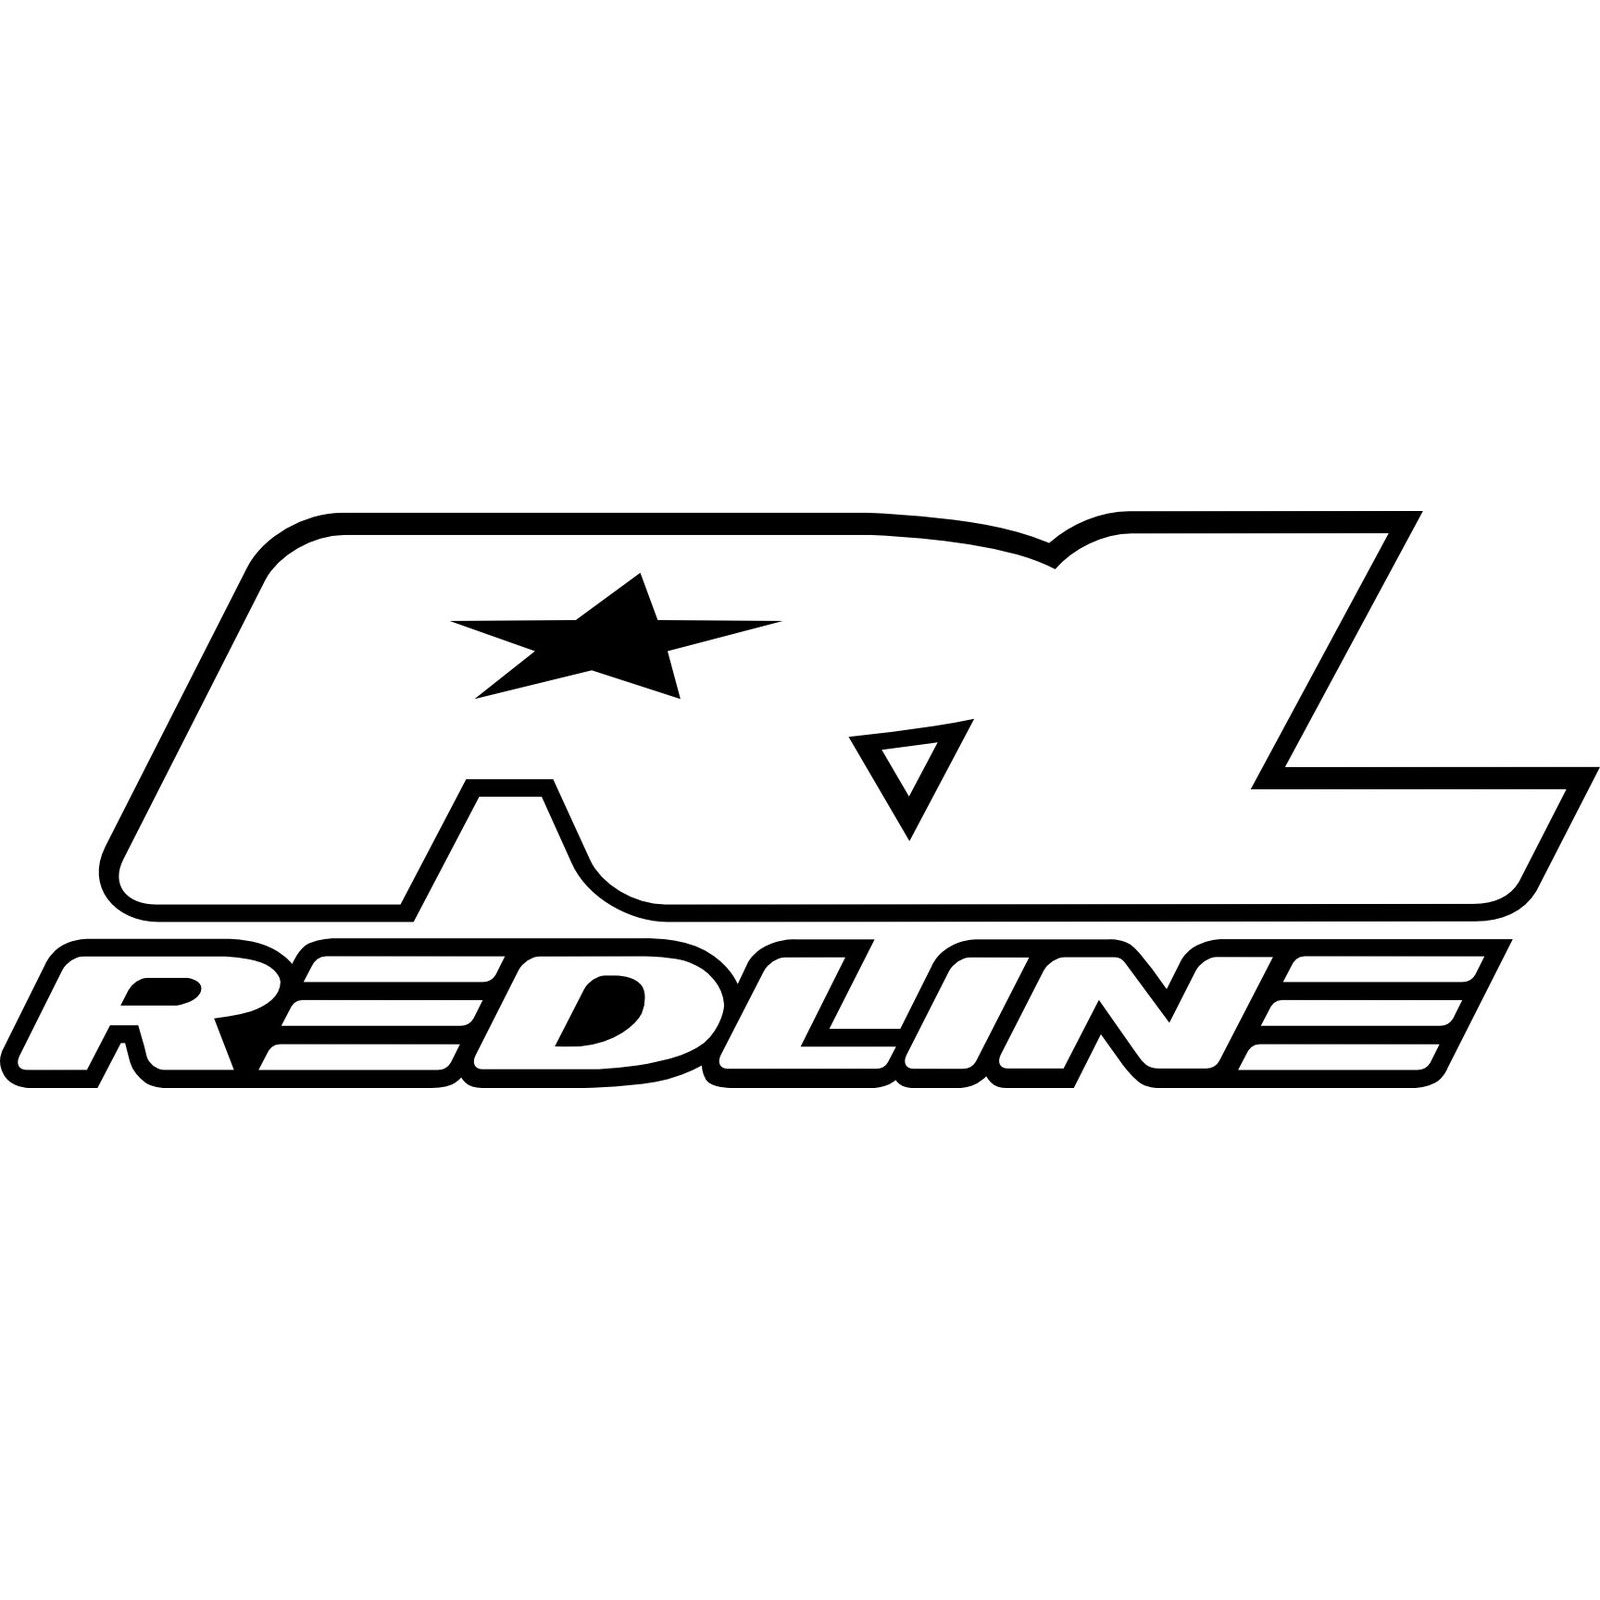 Redline Logo Car/Van/Window Decal.